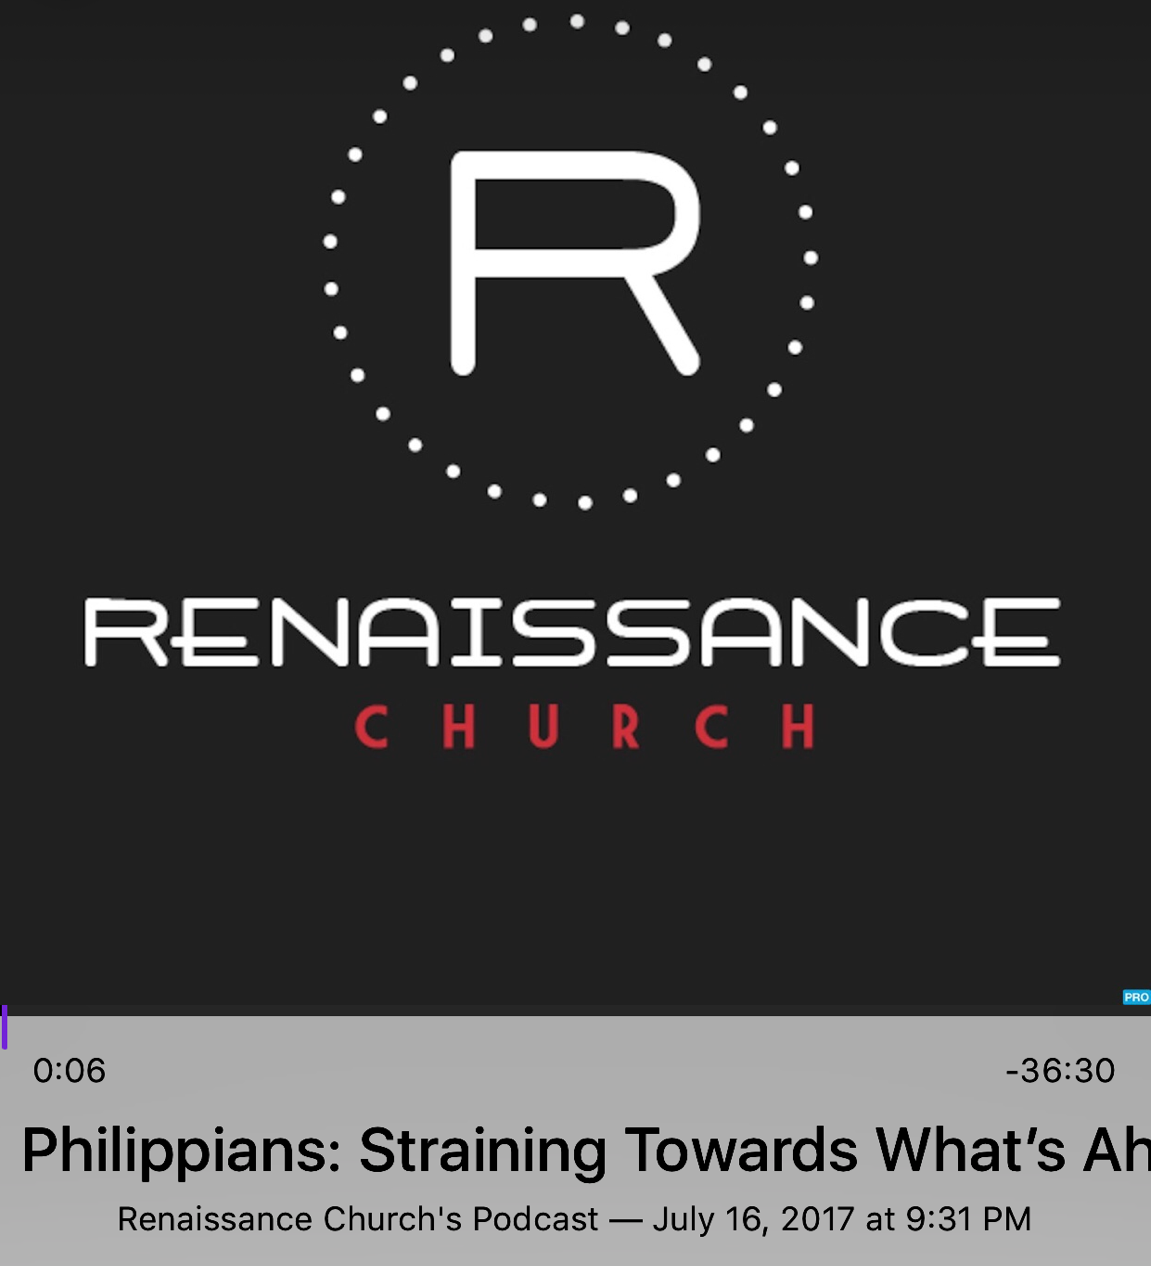 Sermon: Philippians: Straining Towards What's Ahead: July 16, 2017 - You can't experience joy without overcoming your fears about God